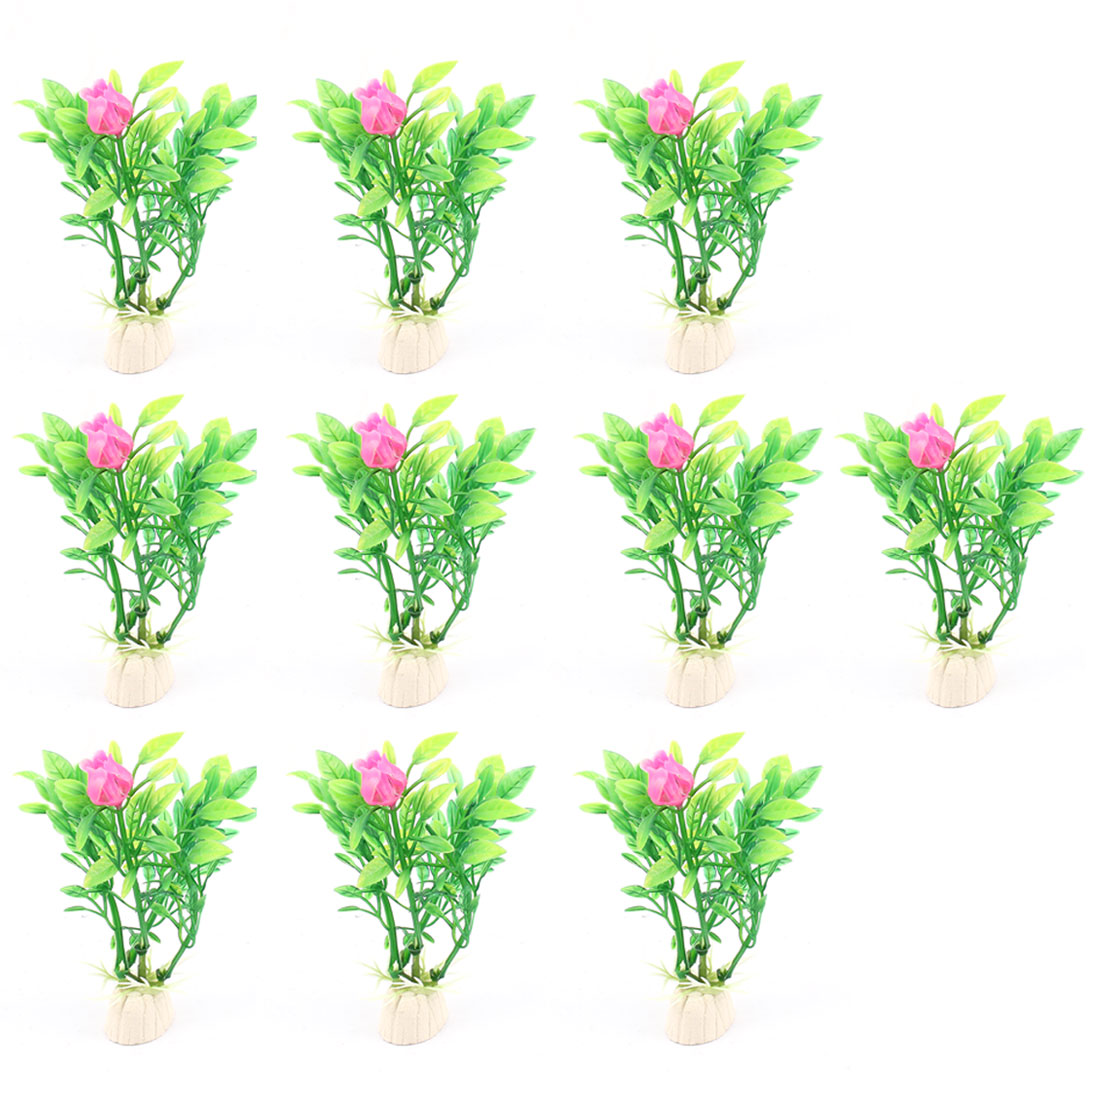 Plastic Aquascaping Underwater Plant Grass Aquarium Decor 10pcs